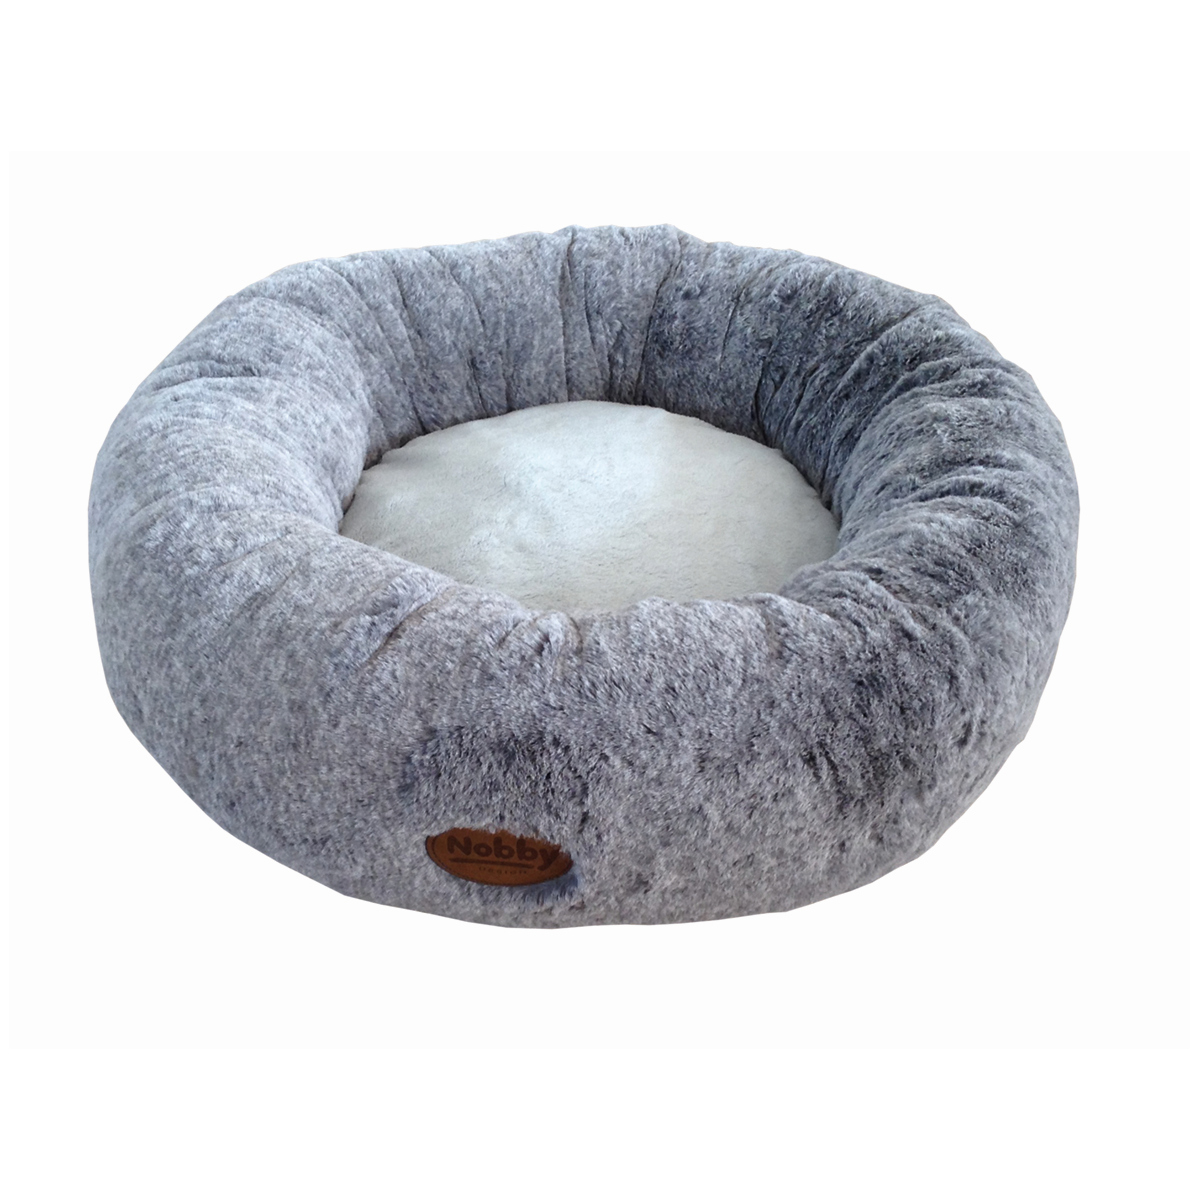 NB DONUT BED CUDDLY L.GR 50CM 00001